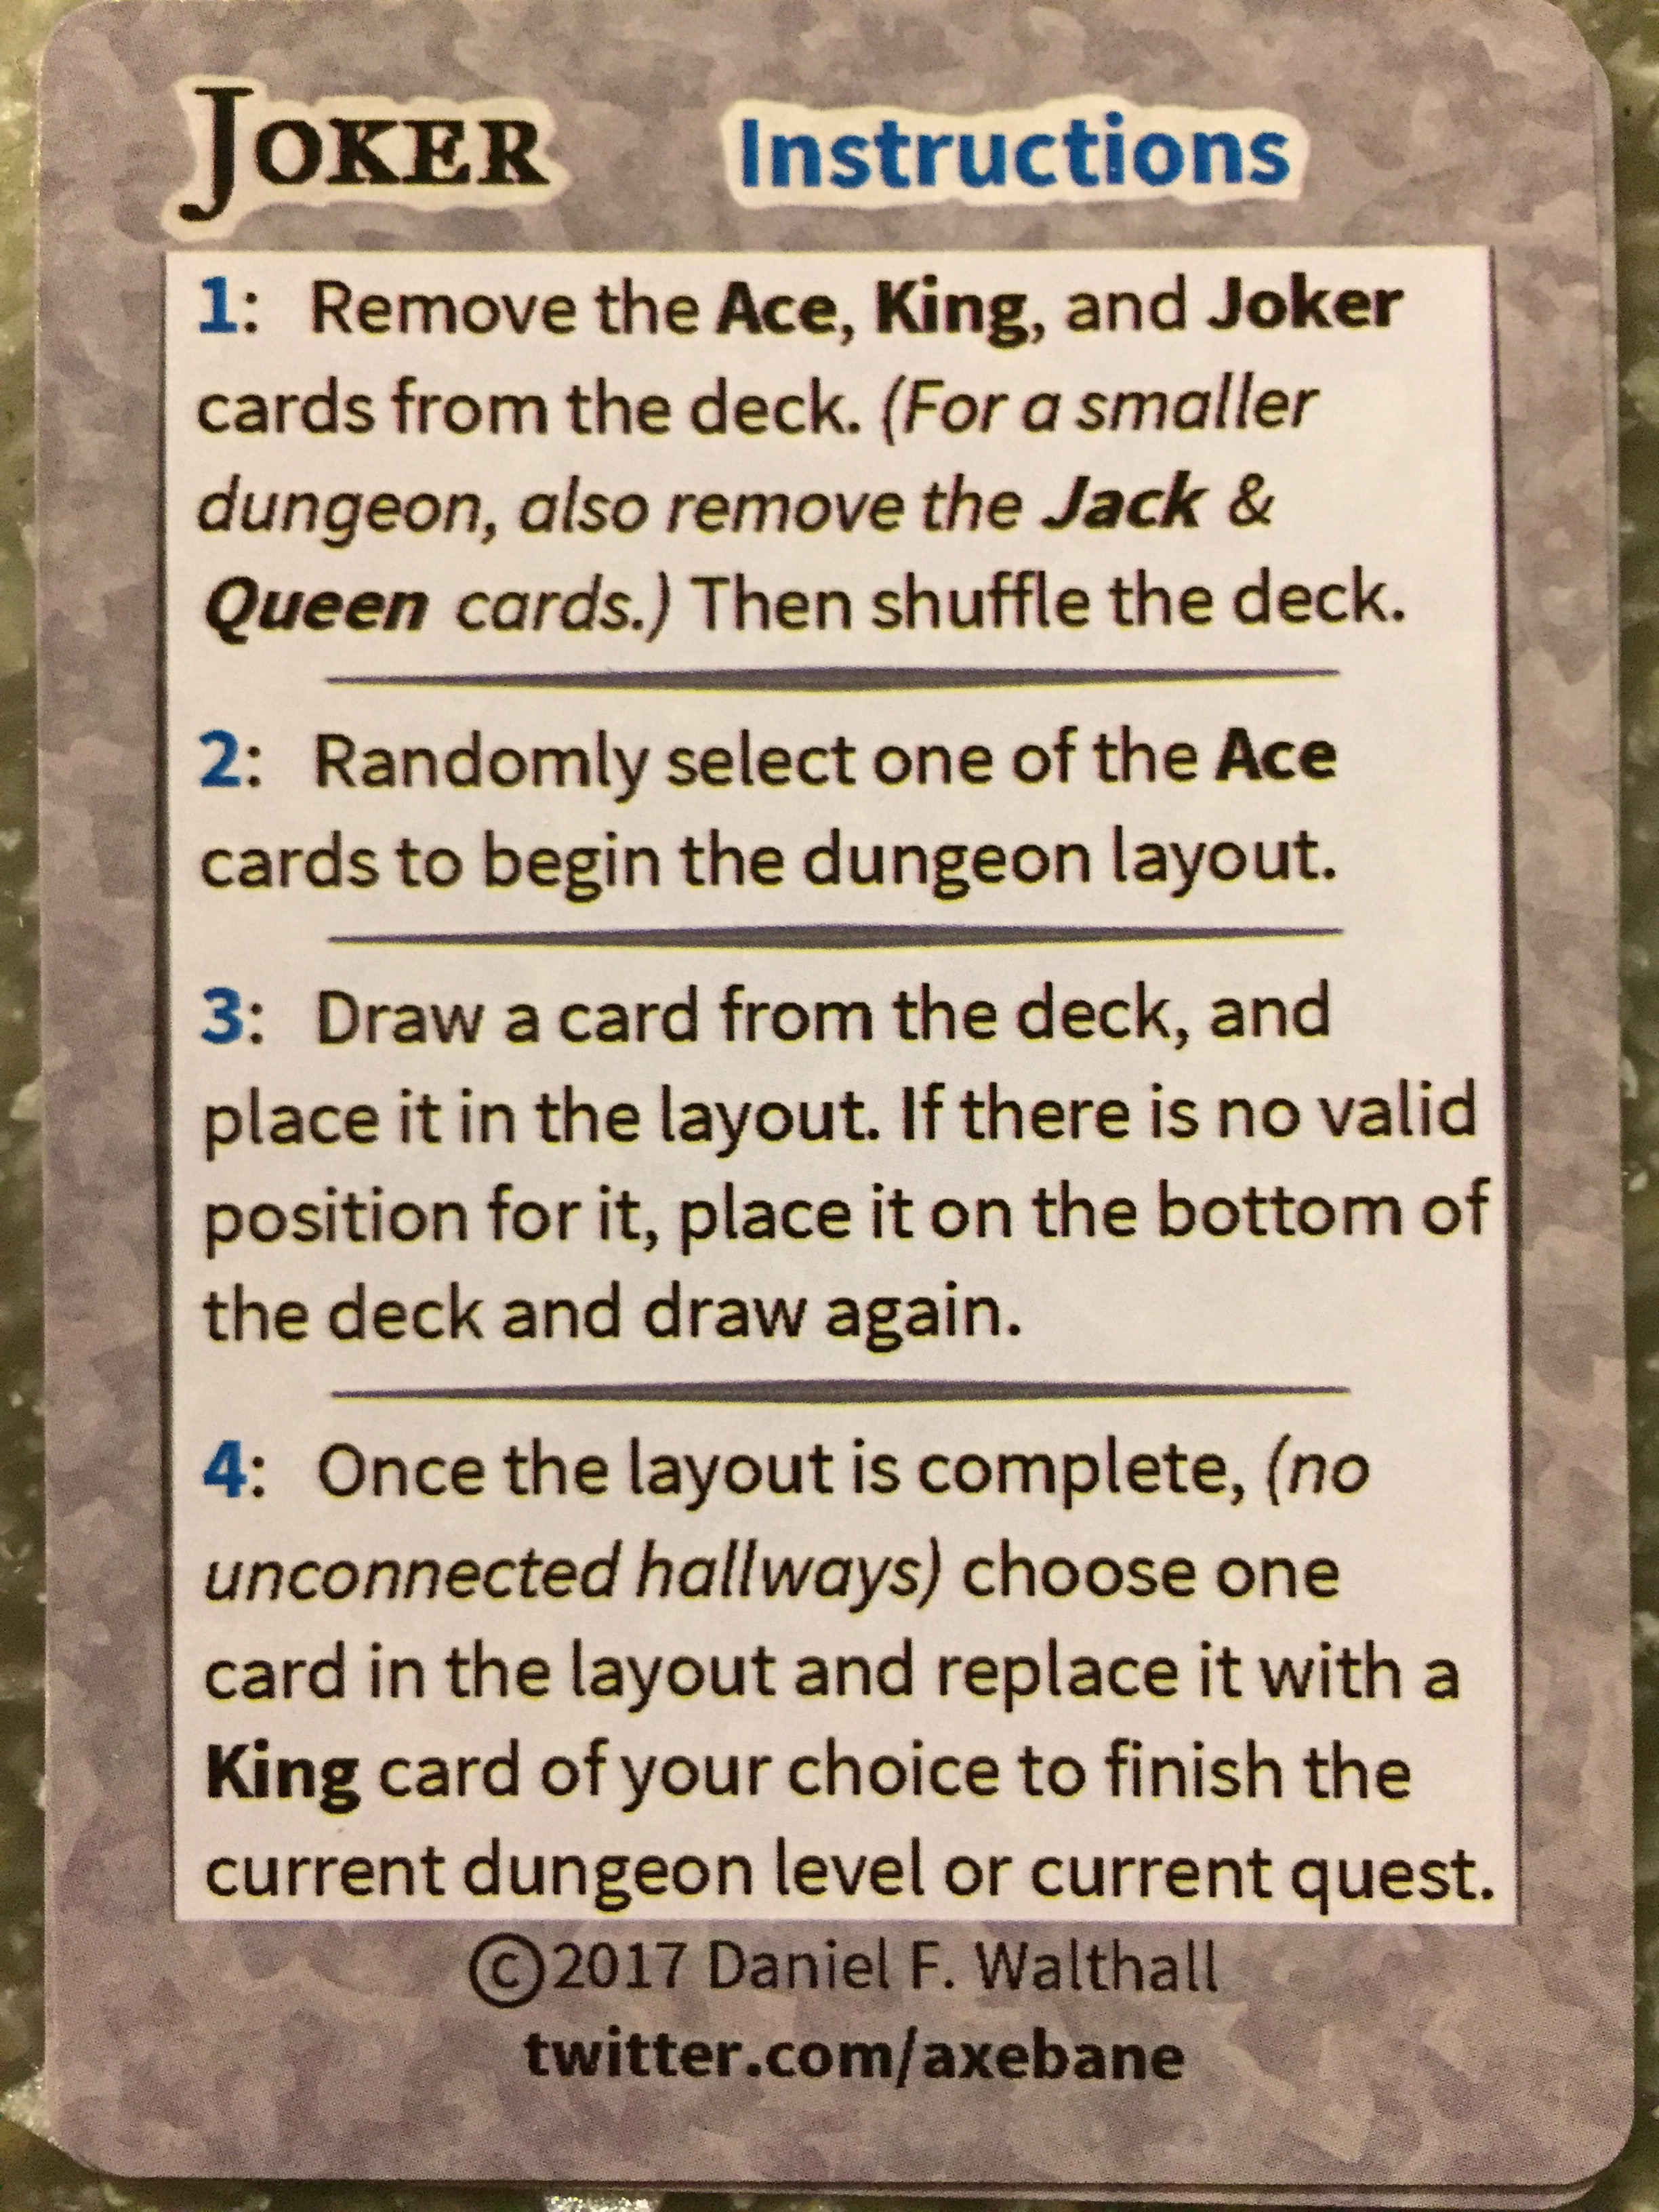 Death By Review] Need instant dungeons? Try a Deck of Many